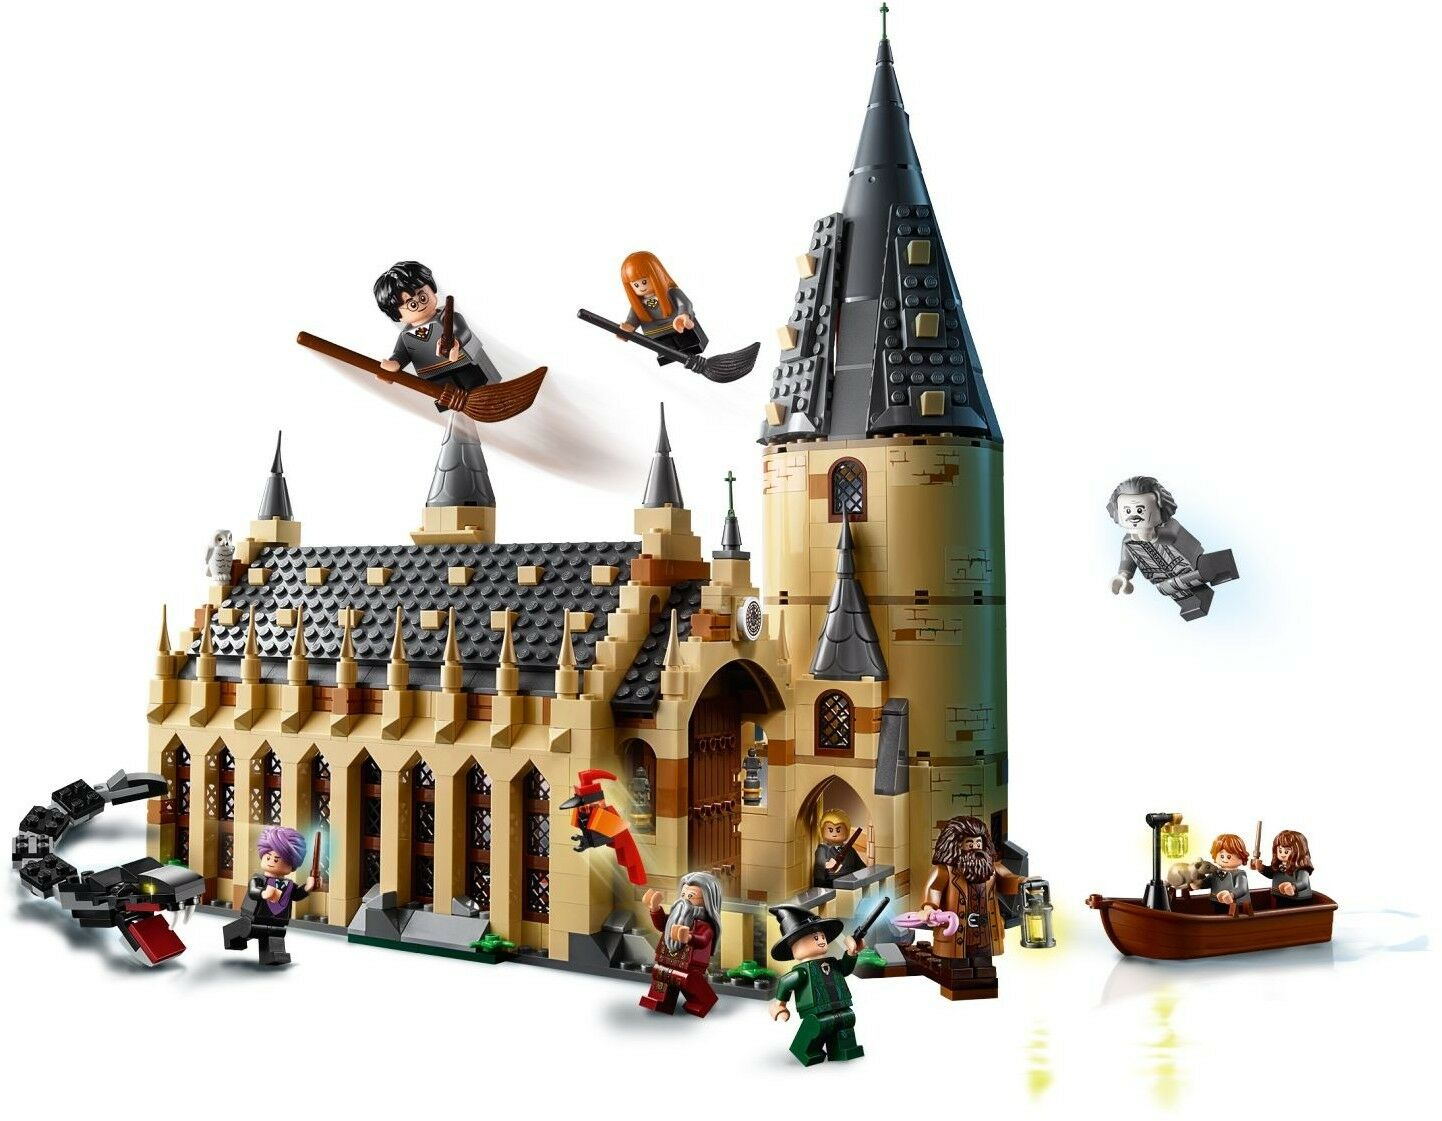 HOT  Harry Potter Hogwarts Great Hall 75954 Wizarding World New 2018 Castle Gift